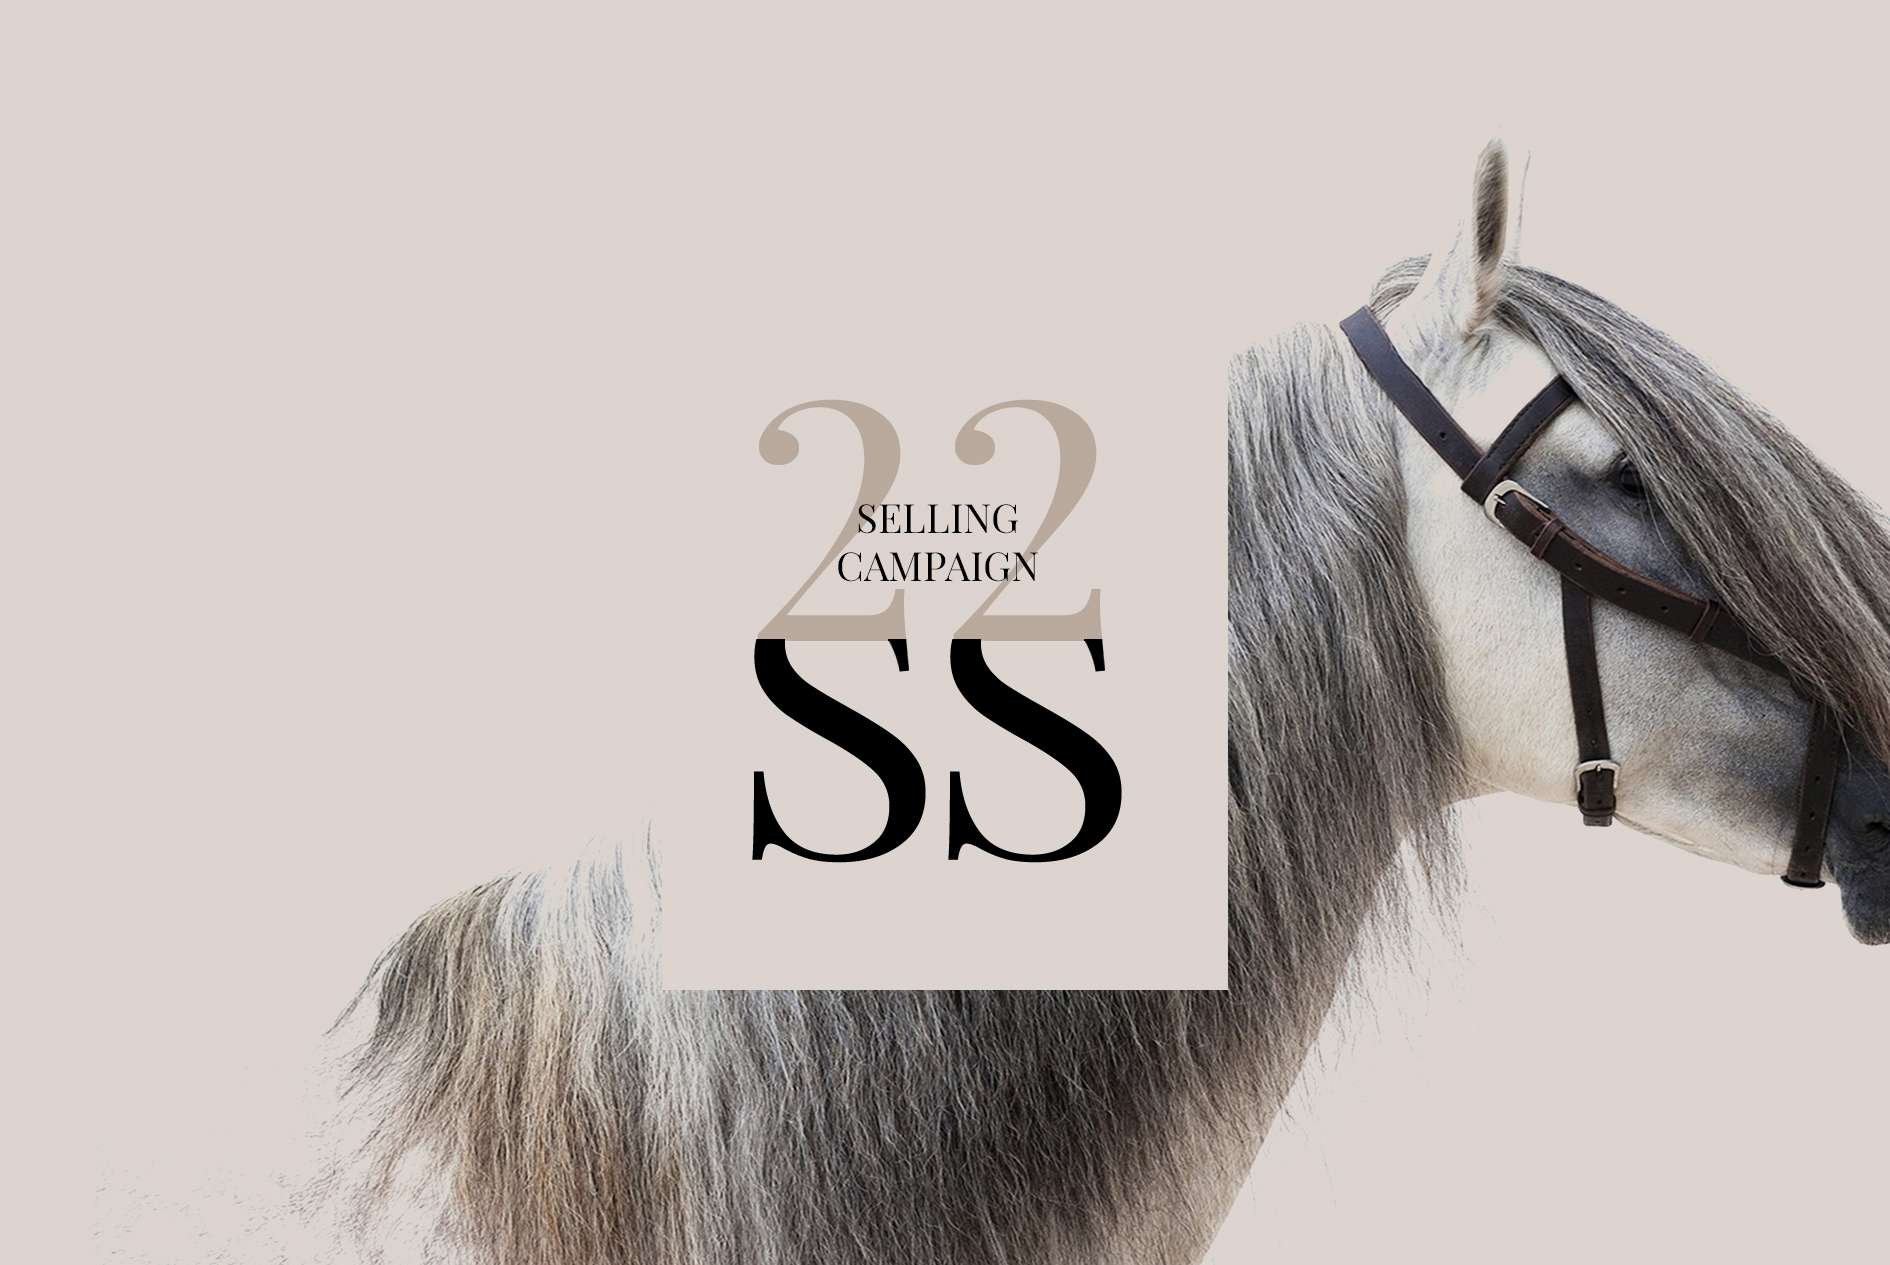 SELLING CAMPAIGN SS22